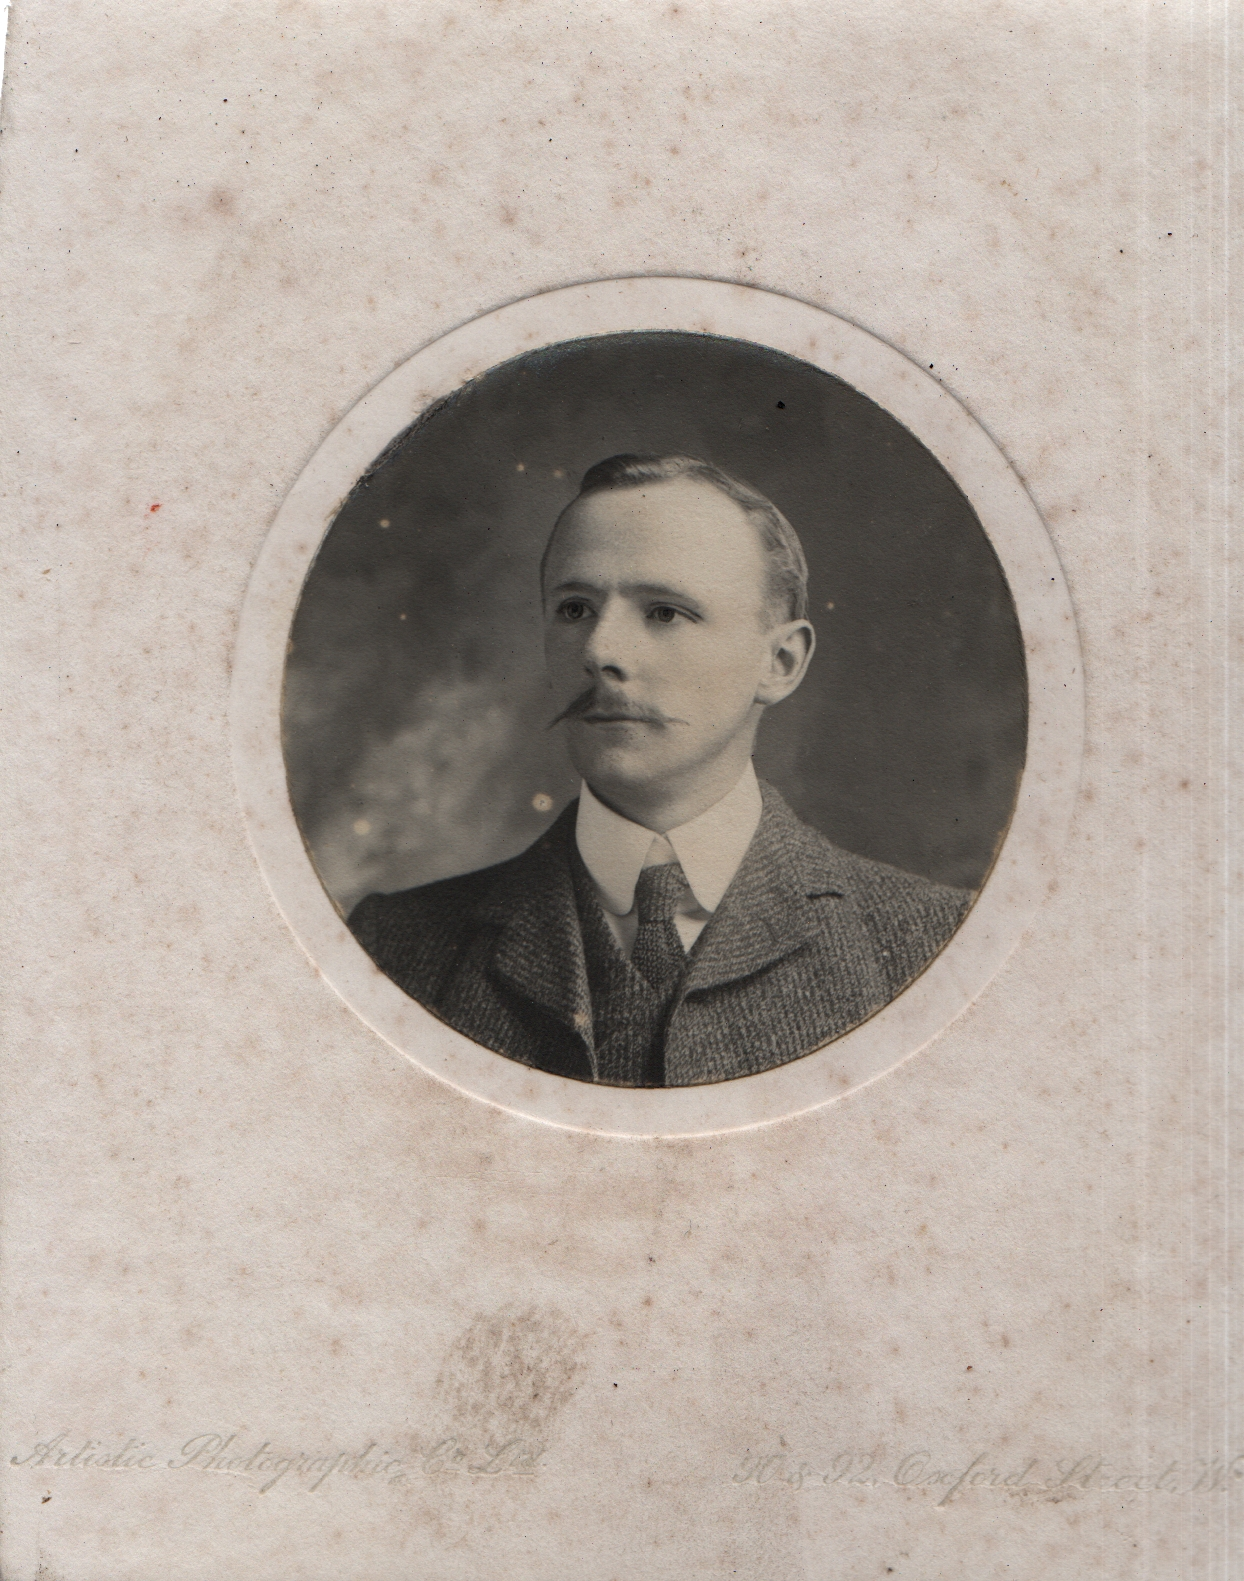 dated June 1901